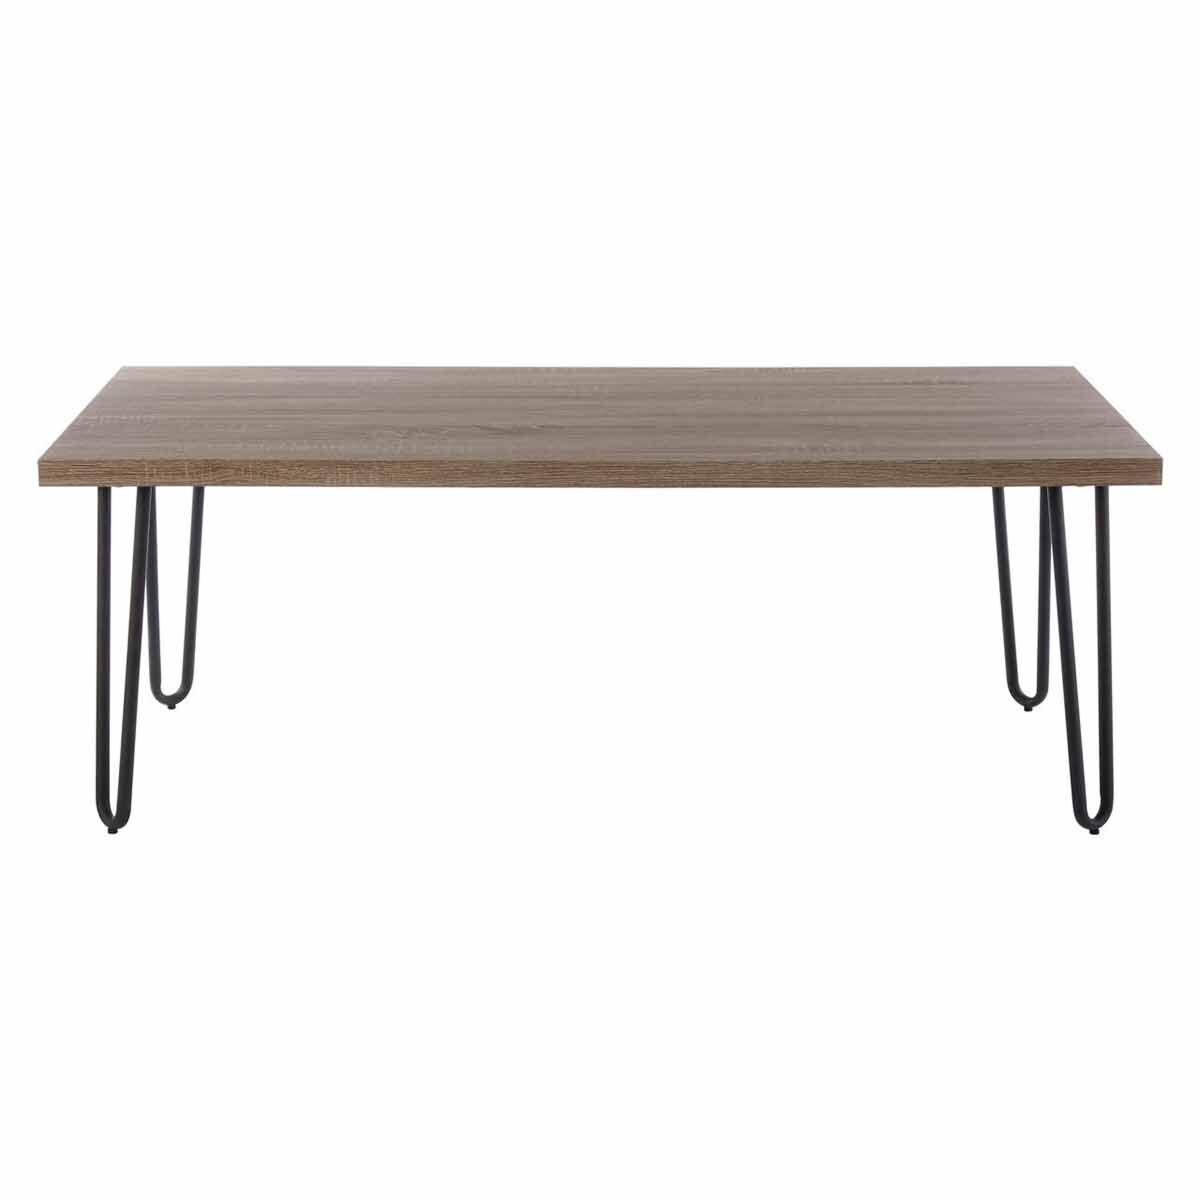 Interiors by PH Coffee Table with Hairpin Legs